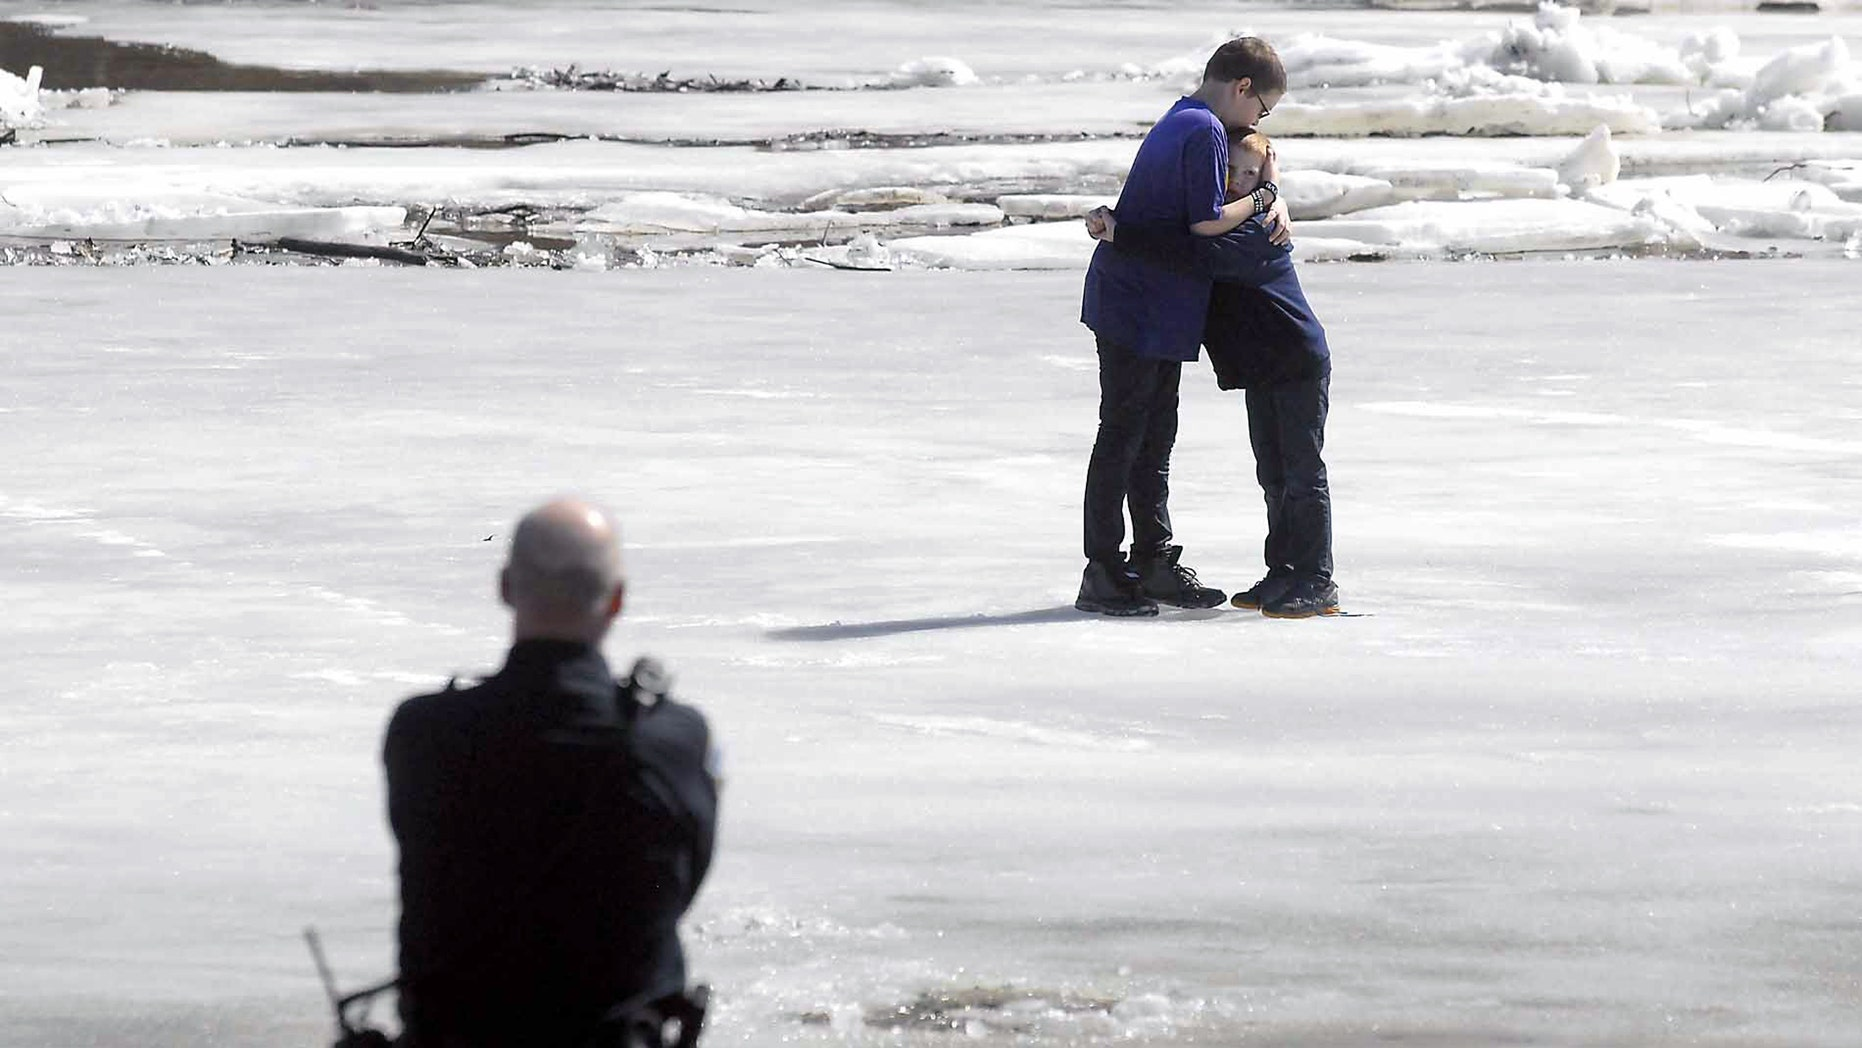 March 20, 2014: In this photo, Corbin Crawford, 12, left, holds his brother, Dylan Crawford, 7, as the pair await rescue from the shifting ice above the Hydroelectric Dam on the Des Moines River near Fort Dodge, Iowa.